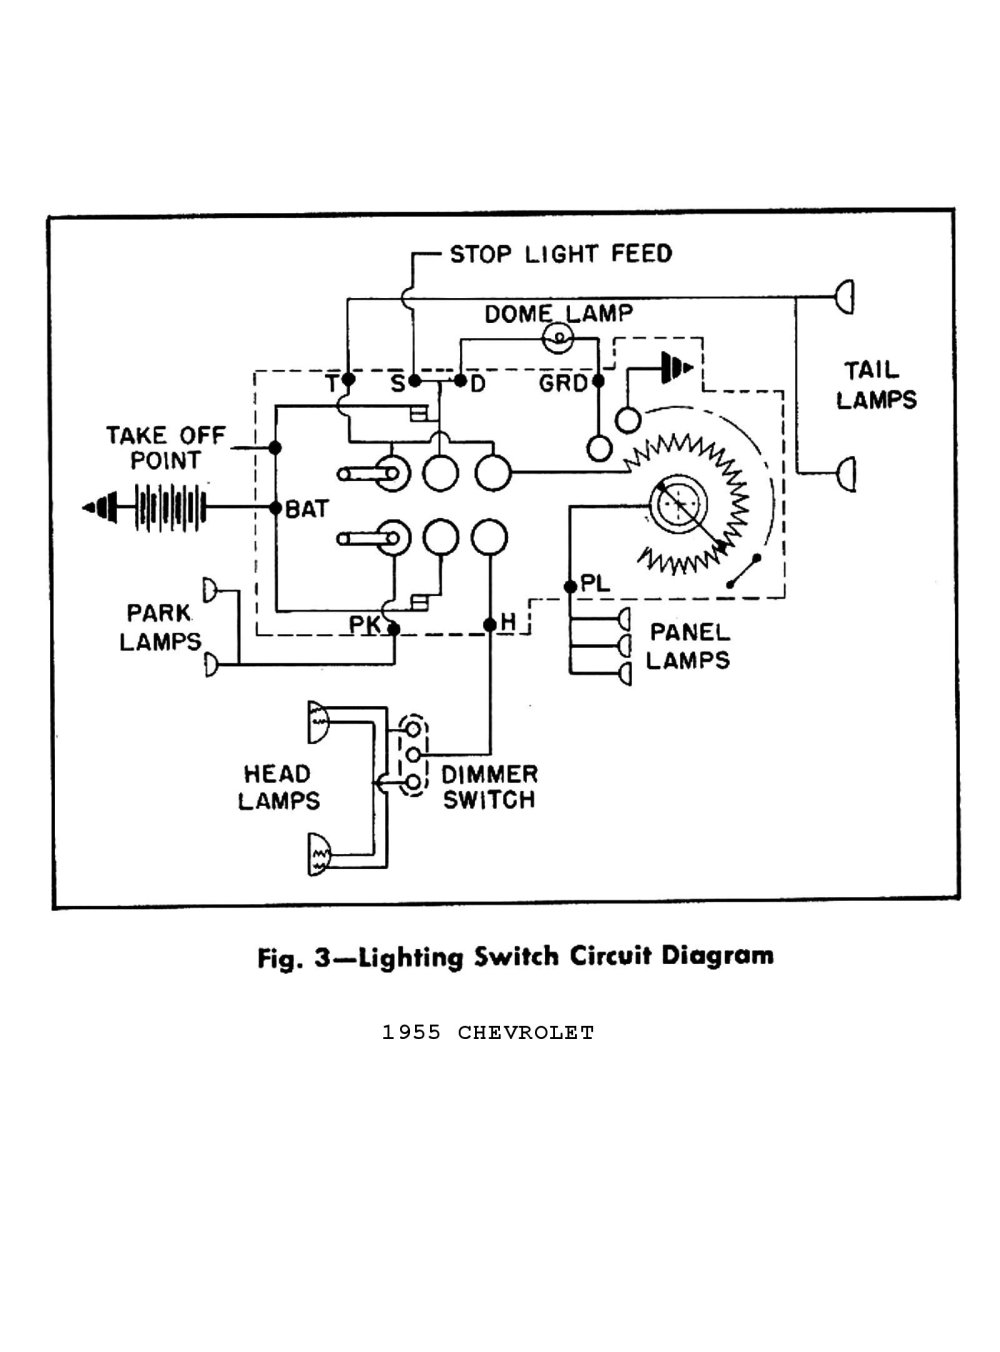 medium resolution of gm steering column dimmer switch wiring diagram schematic wiring light switch wiring diagram accu drive led dimmer switch wiring diagram